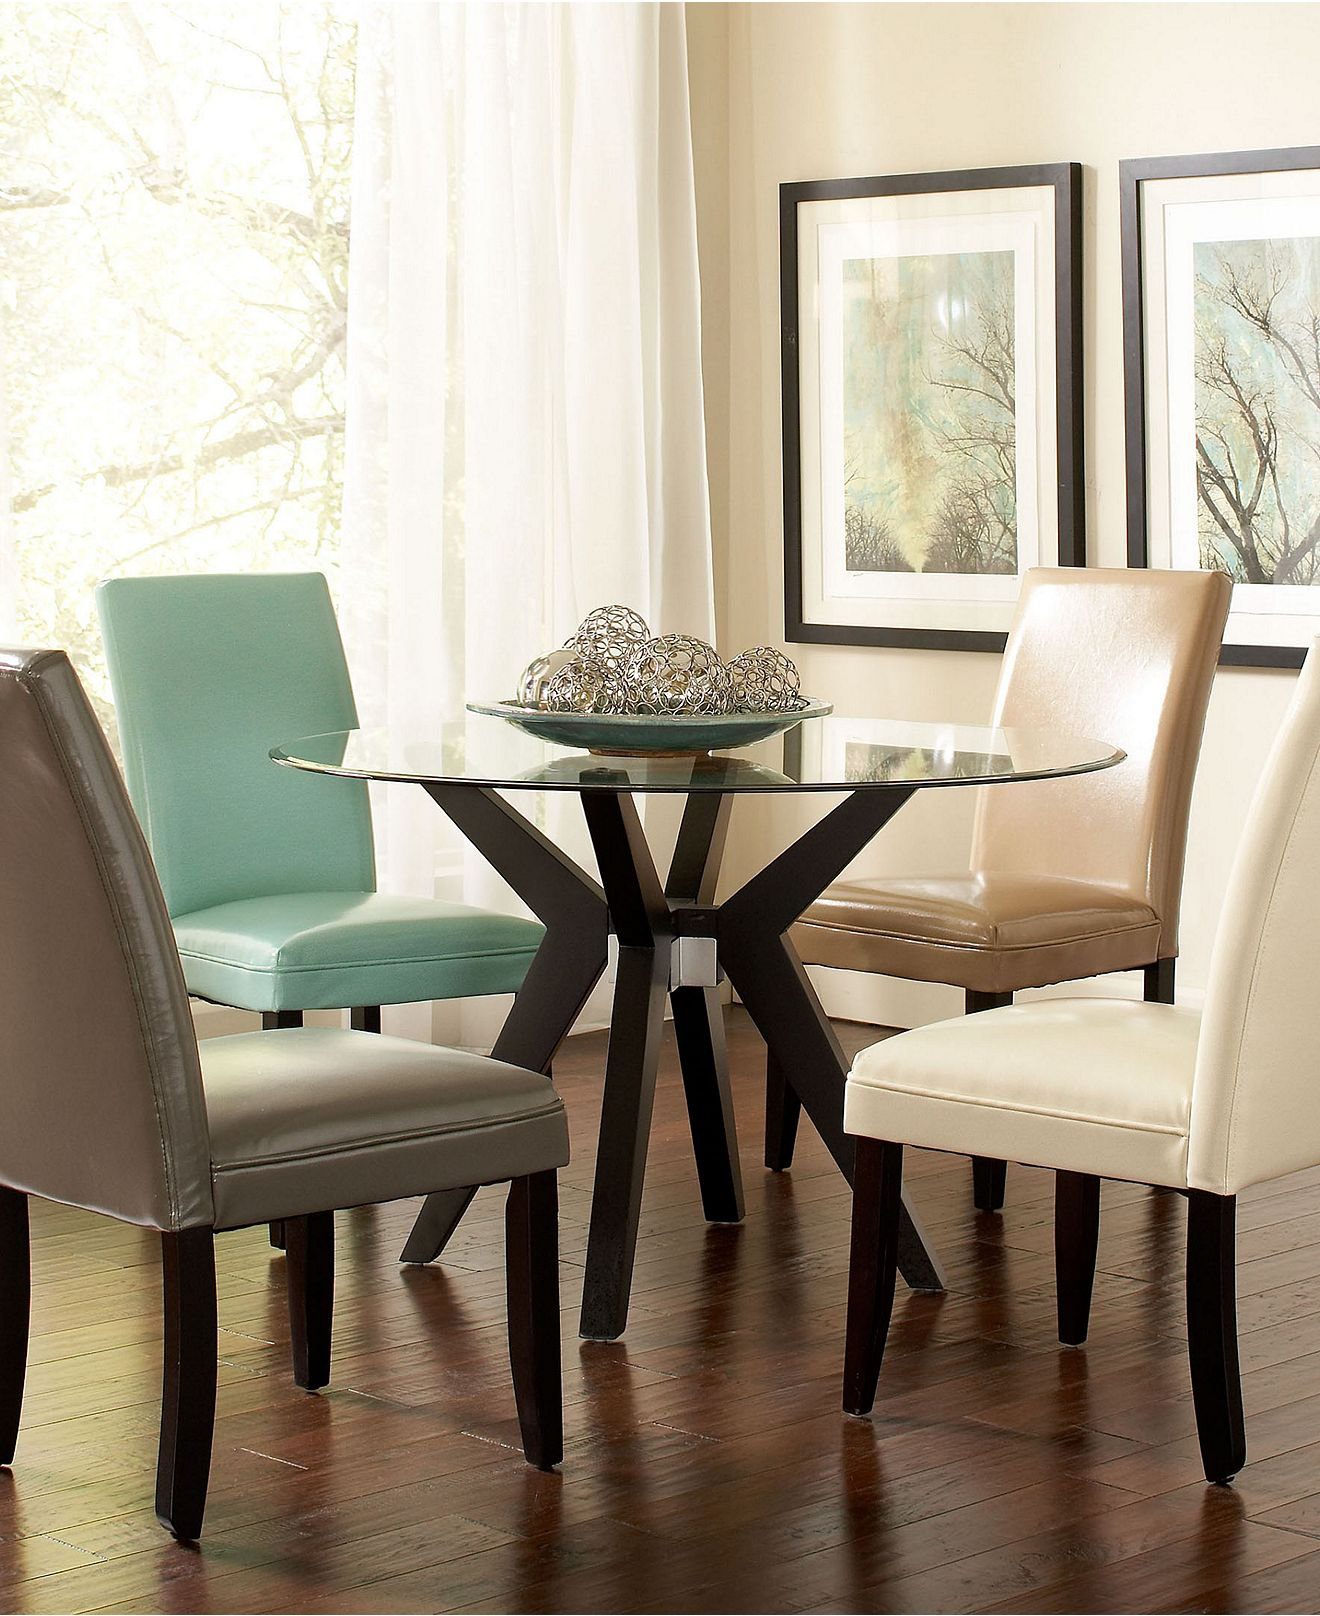 Celeste dining room furniture 5 piece from macys for Macys dining room chairs